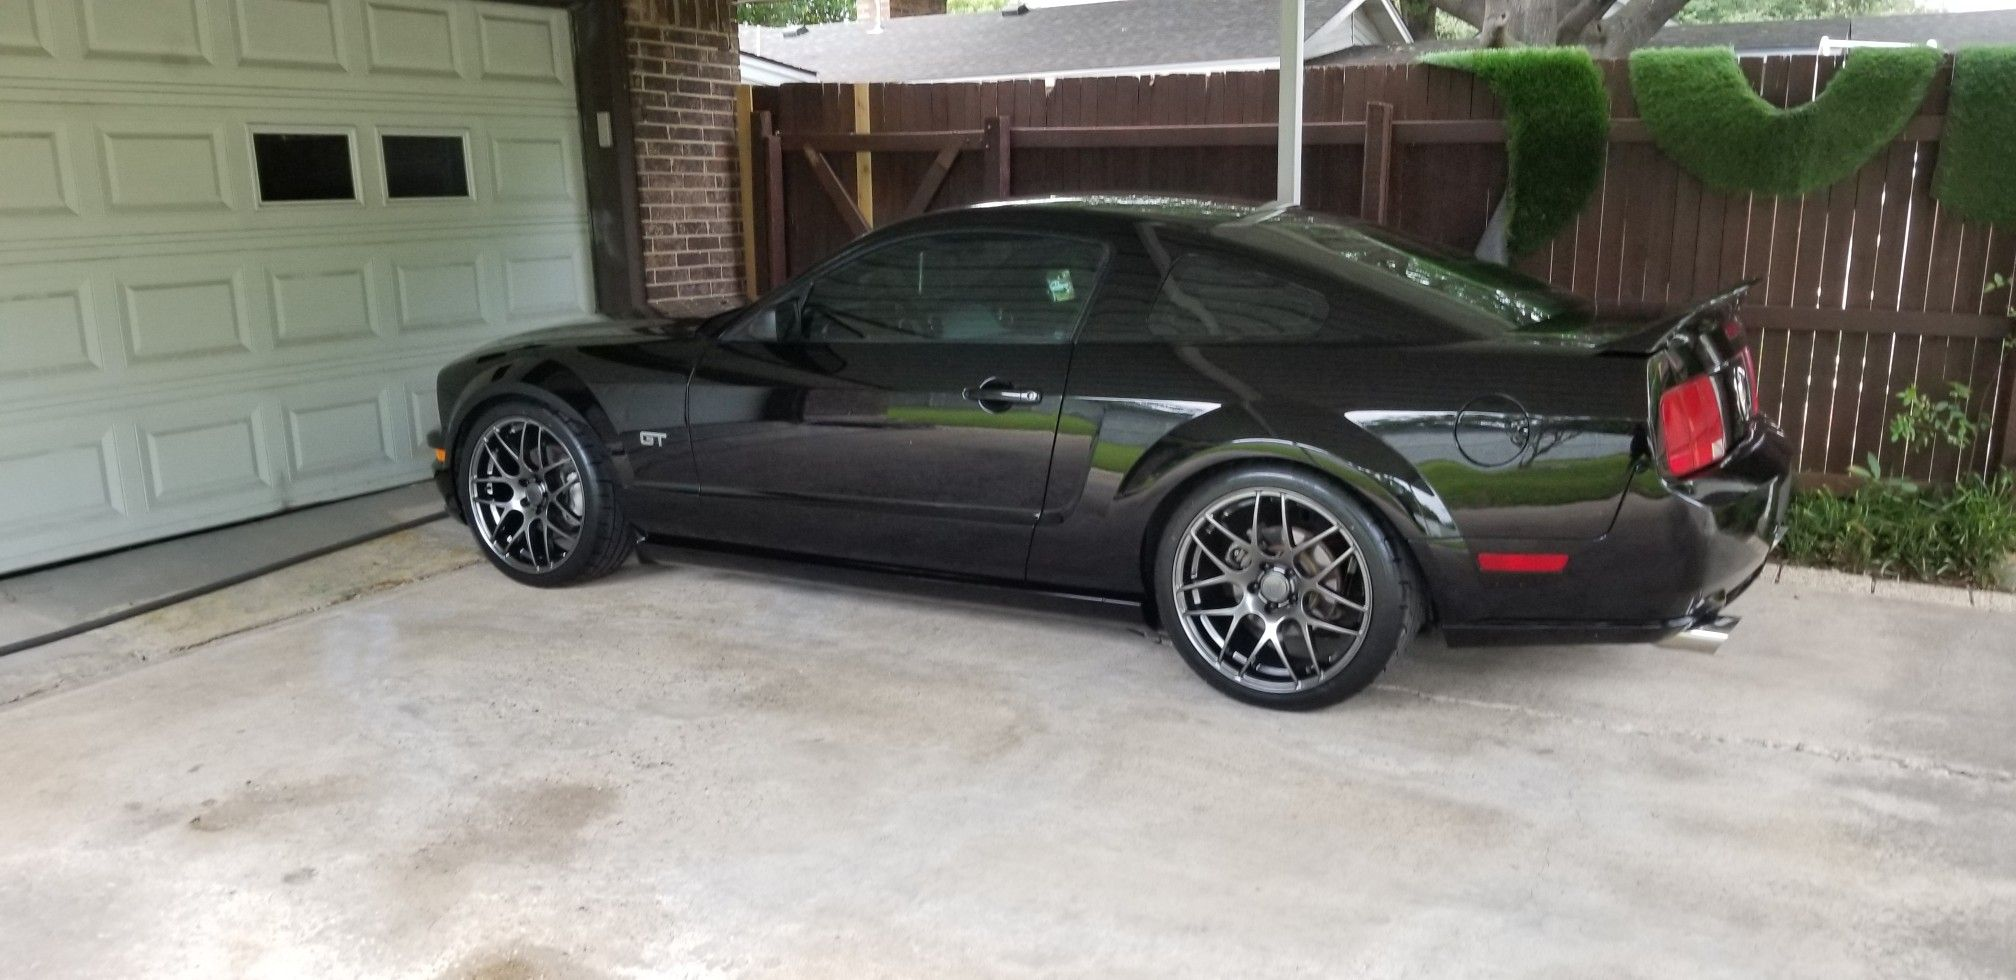 My 2005 Ford Mustang Gt With A Few Recent Upgrades And Mods